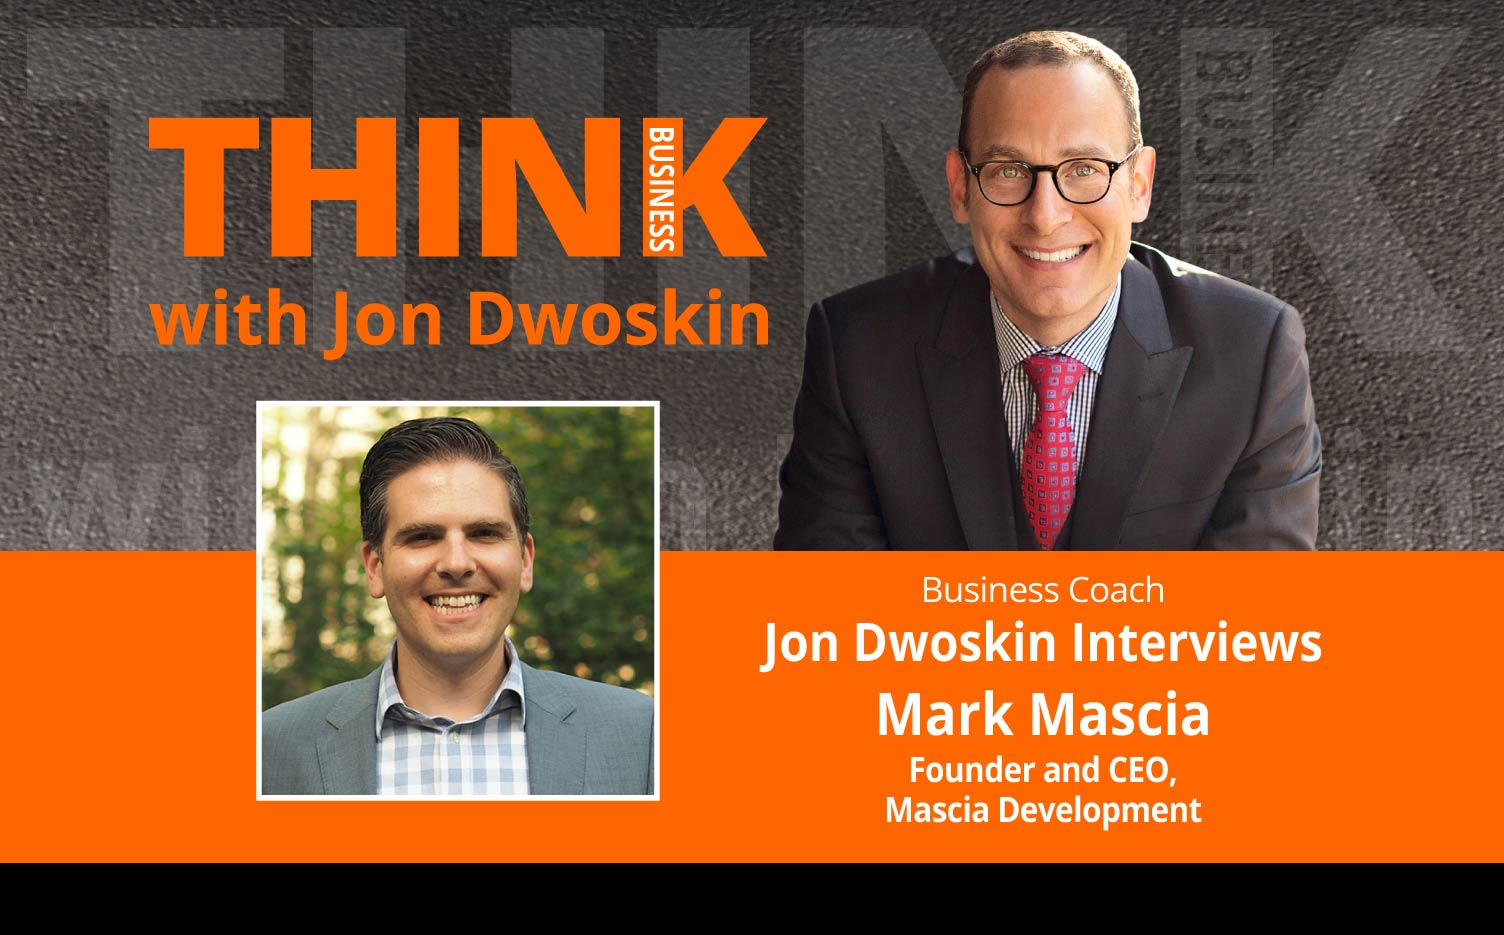 THINK Business Podcast: Jon Dwoskin Interviews Mark Mascia, Founder and CEO of Mascia Development